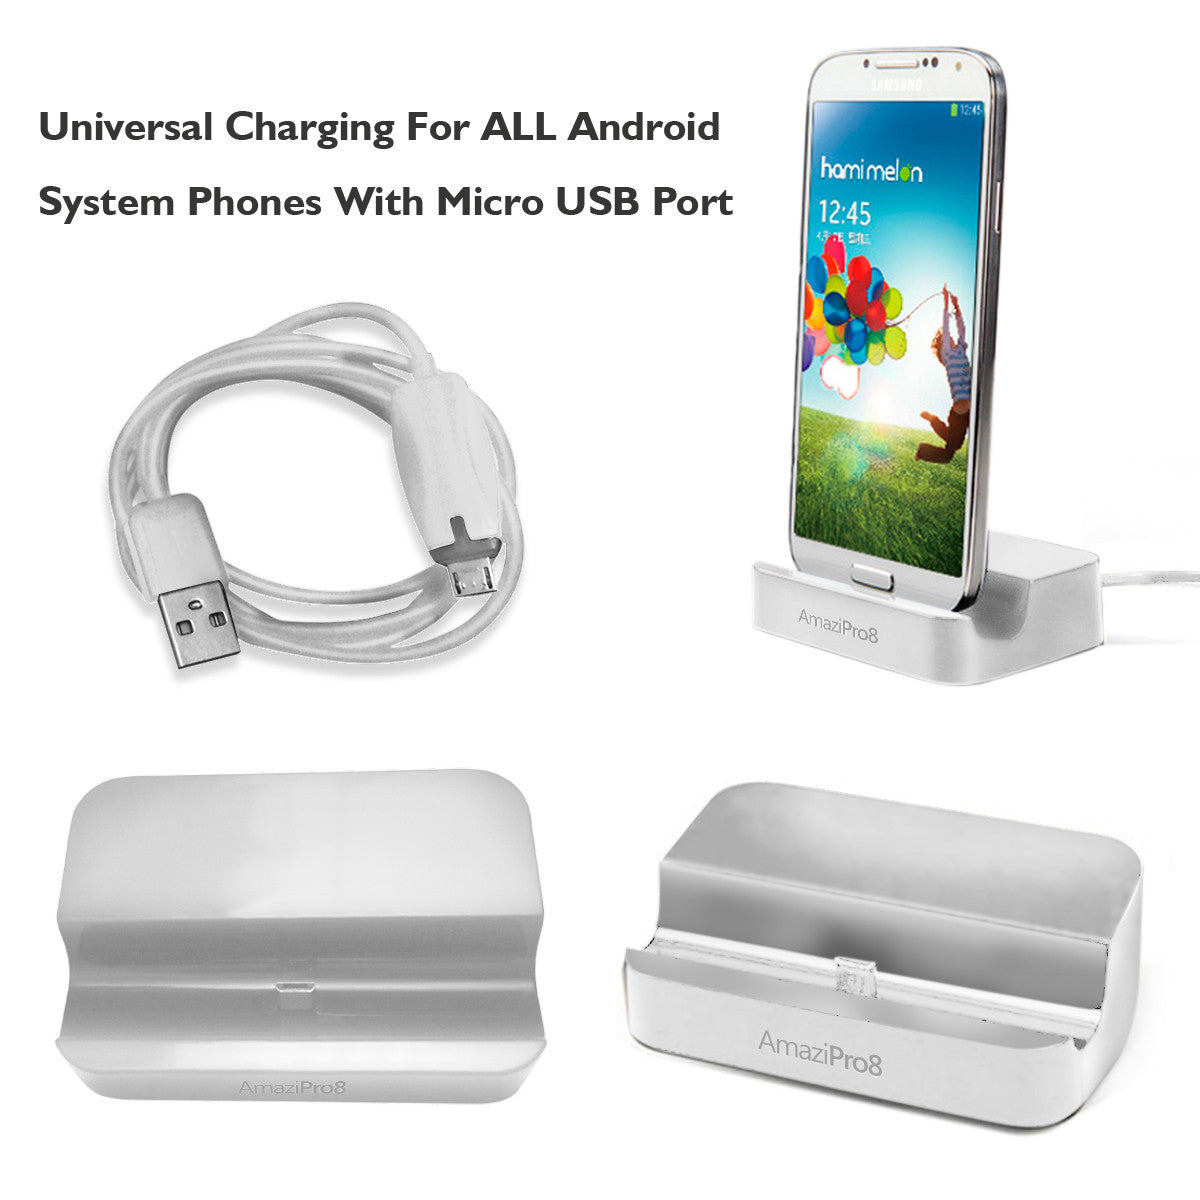 Universal Charger Docking Station for Android Smartphone -Charging dock for almost all Android Smart phones - AmaziPro8